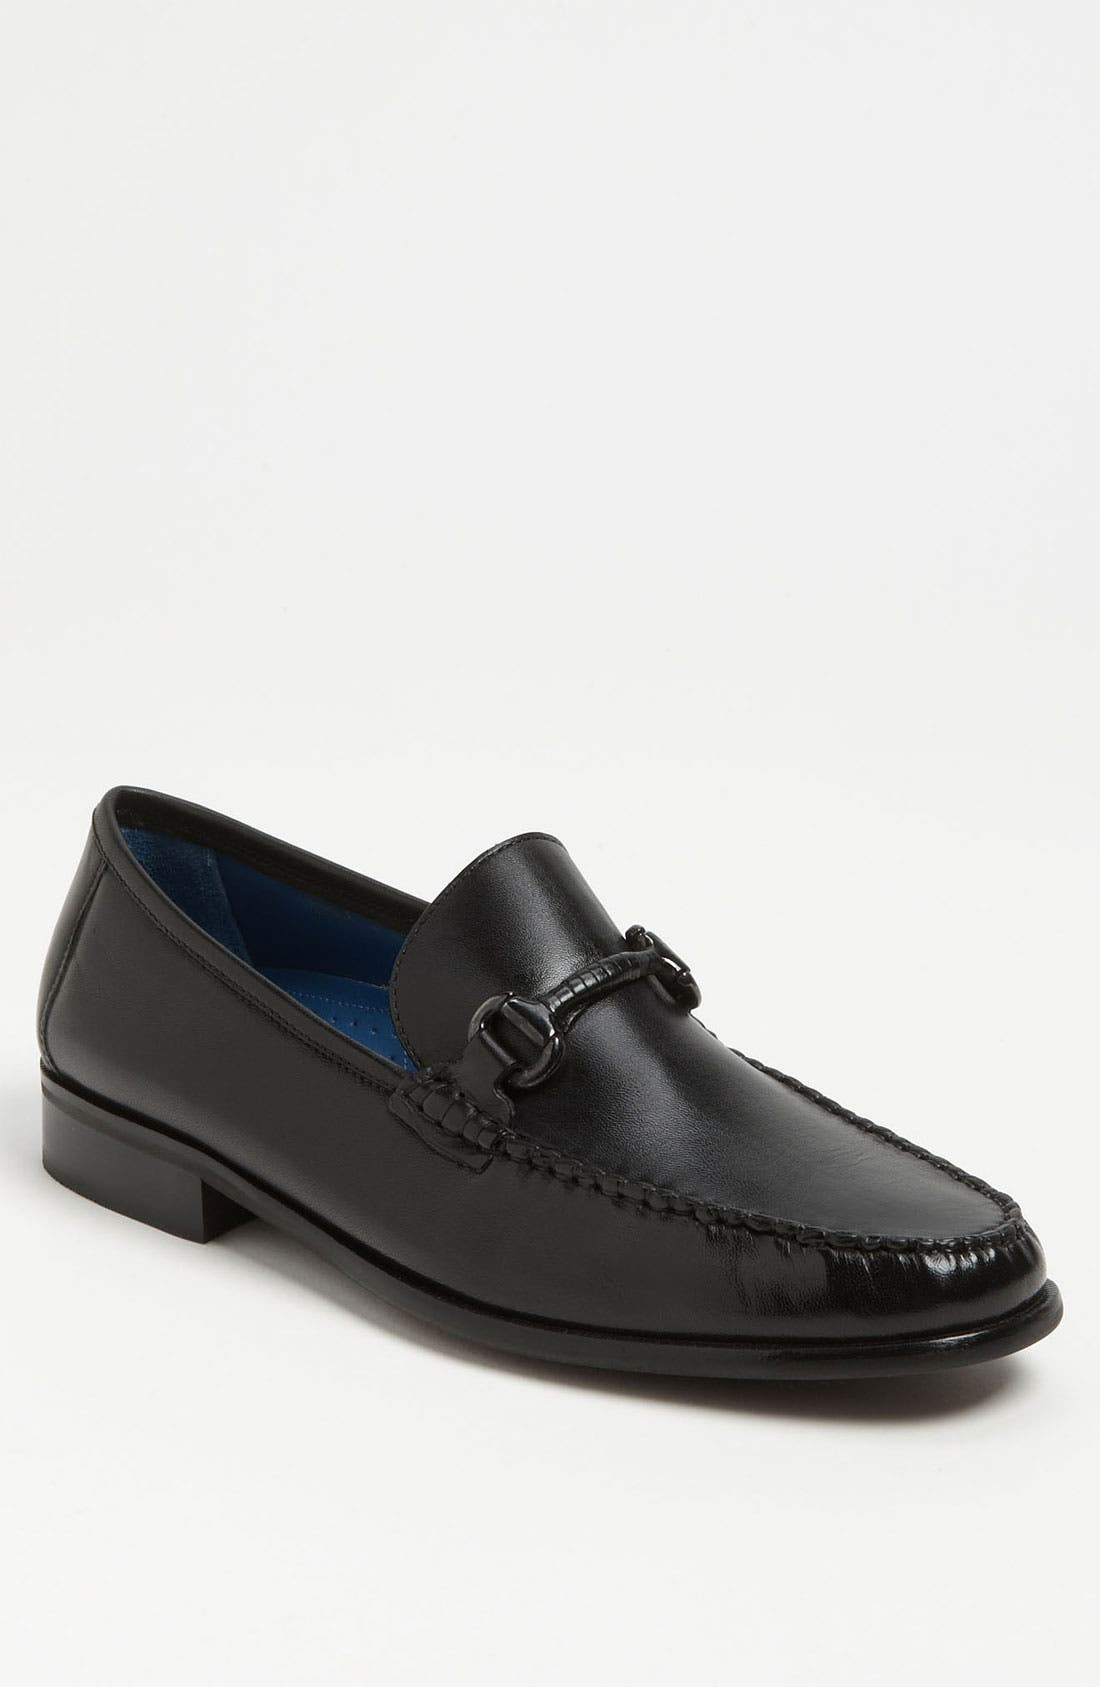 'Sarasota' Bit Loafer,                             Main thumbnail 1, color,                             Black Smooth